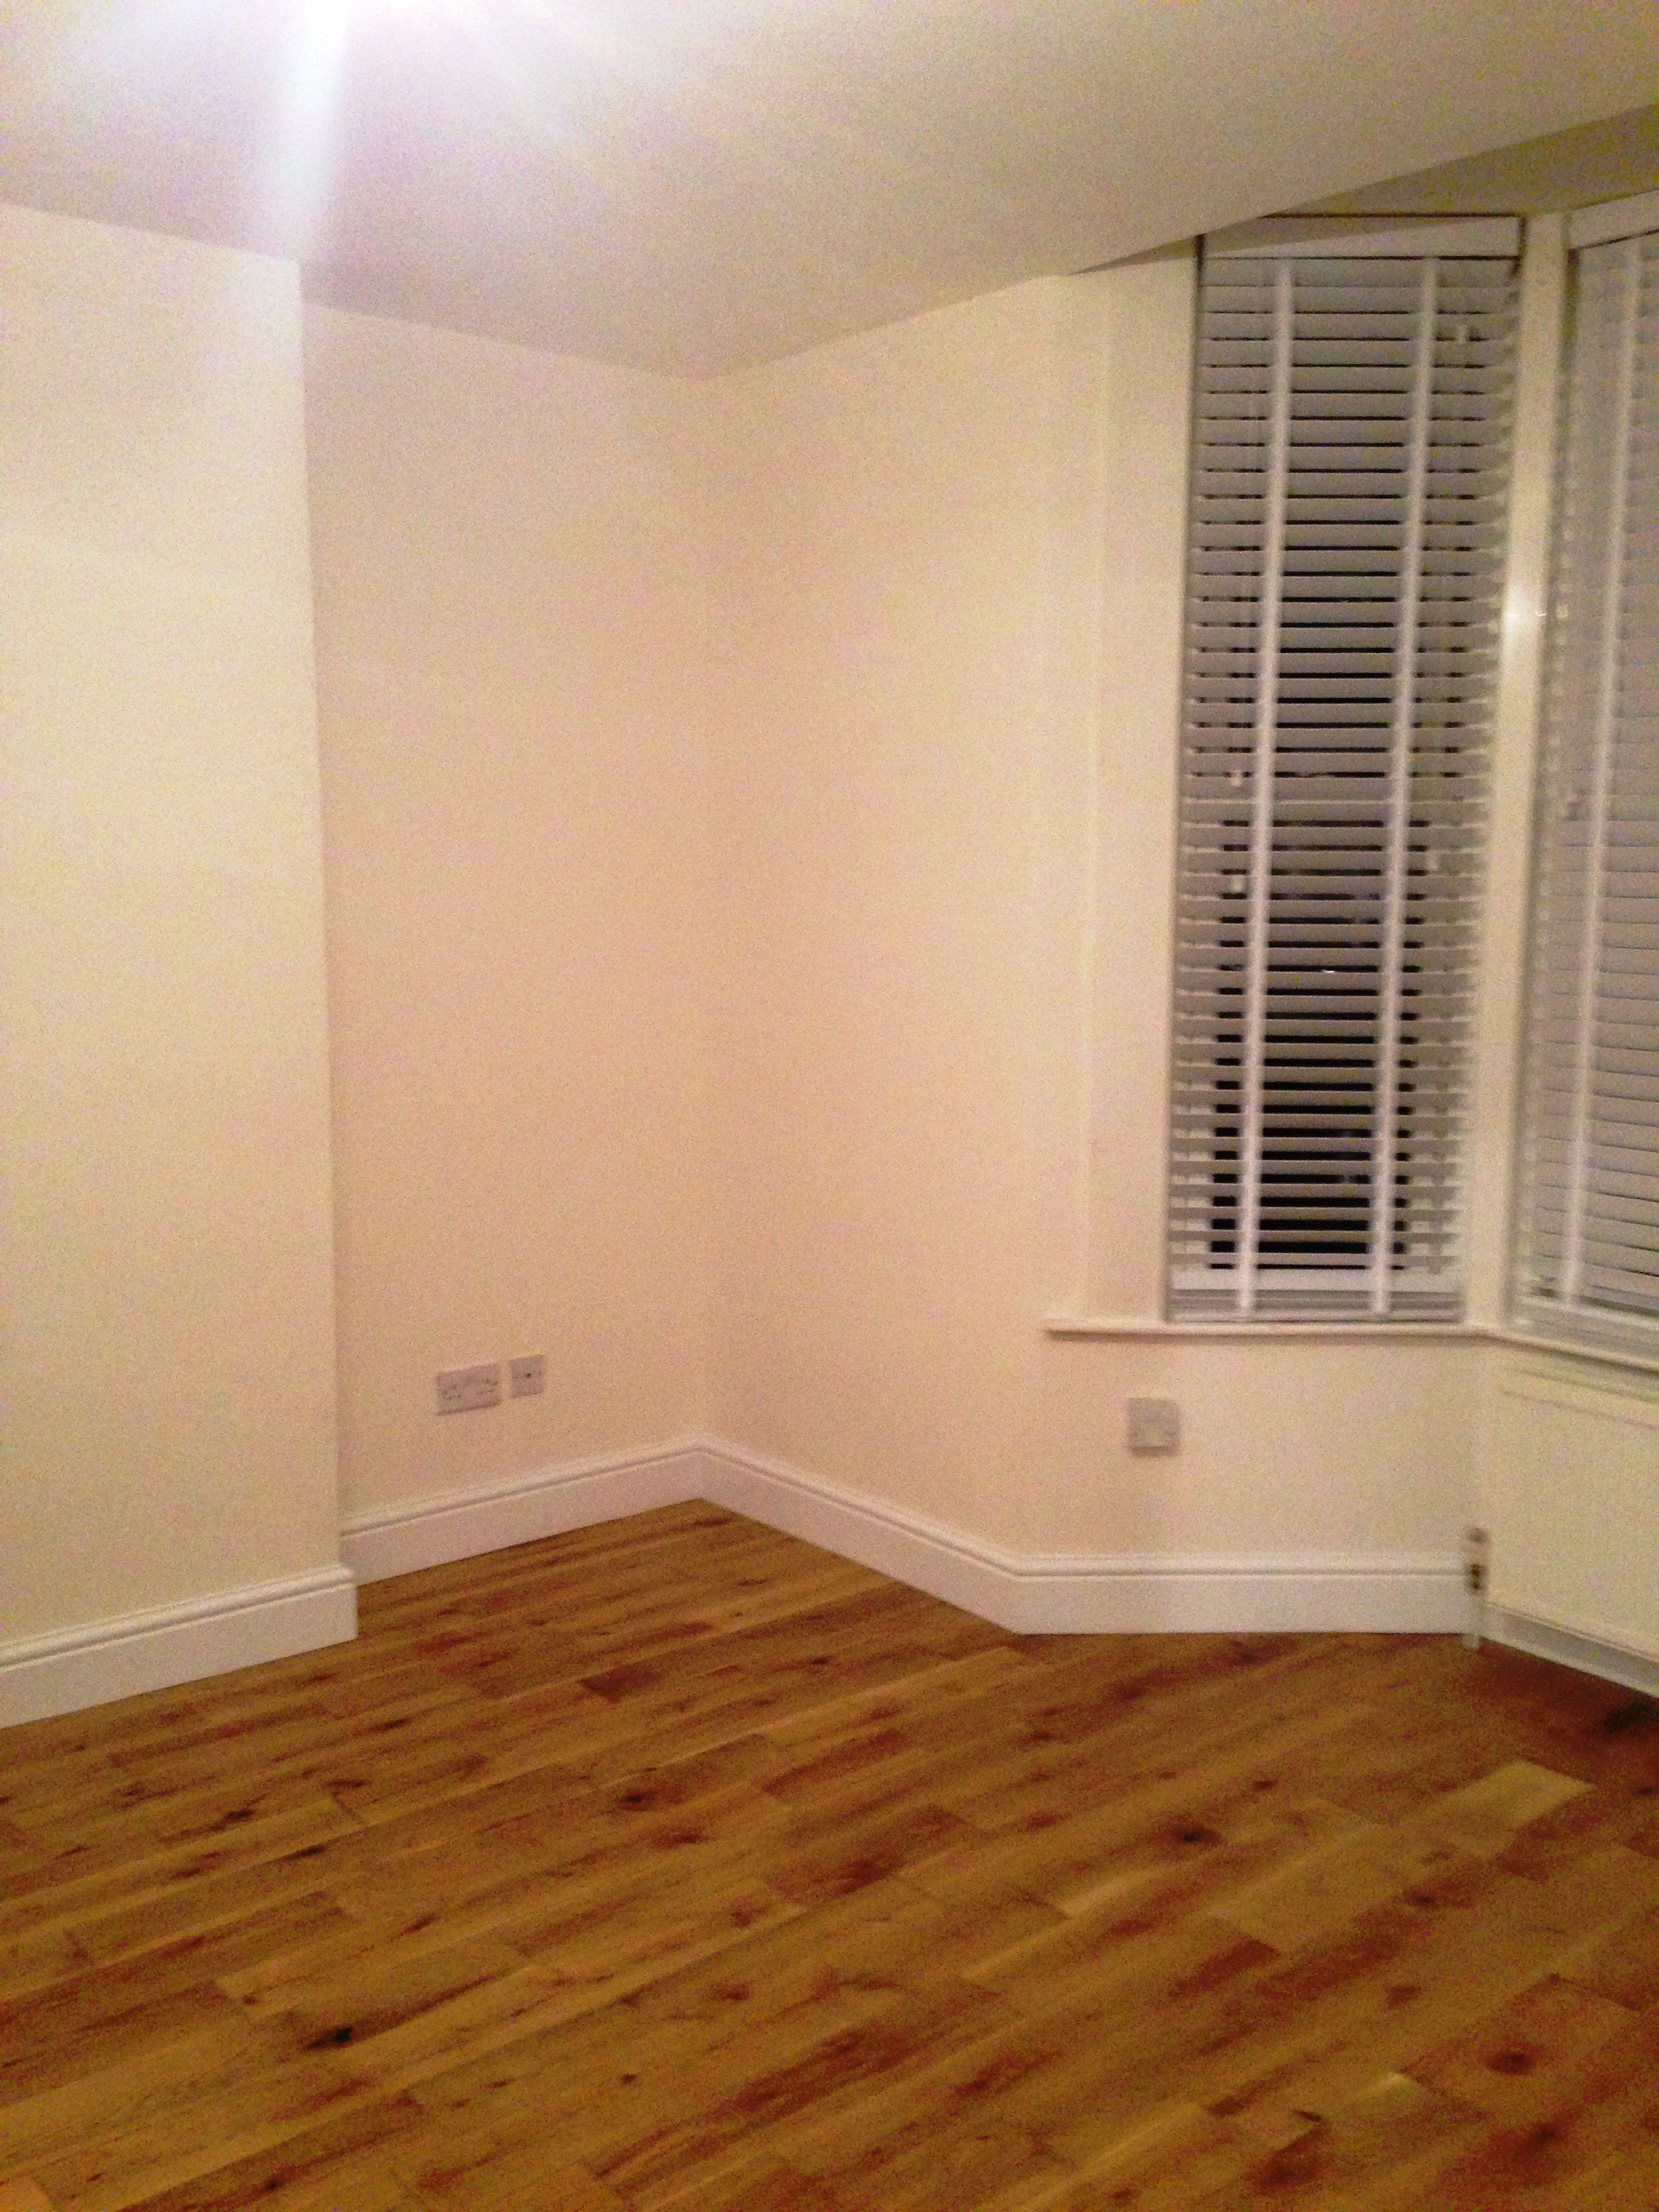 Well located 2 bedroom newly refurbished with high standard.